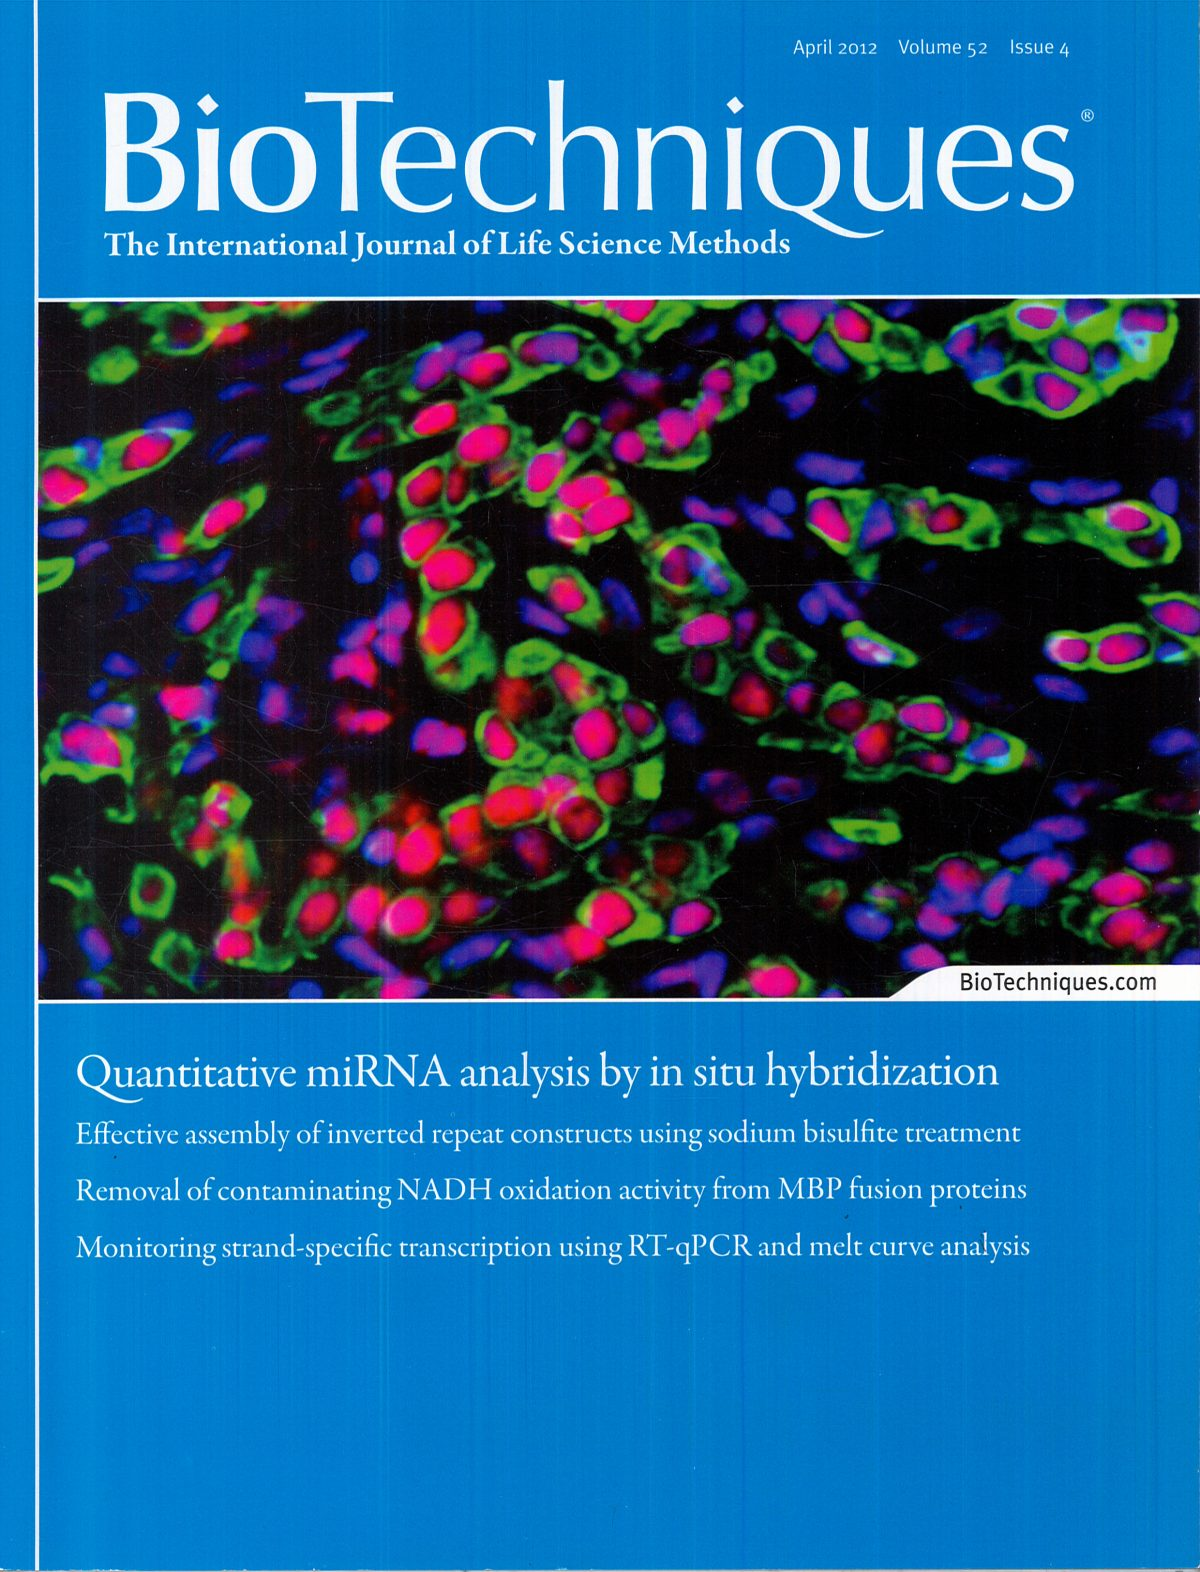 """BioTechniques (The International Journal of Life Science Methods)"""